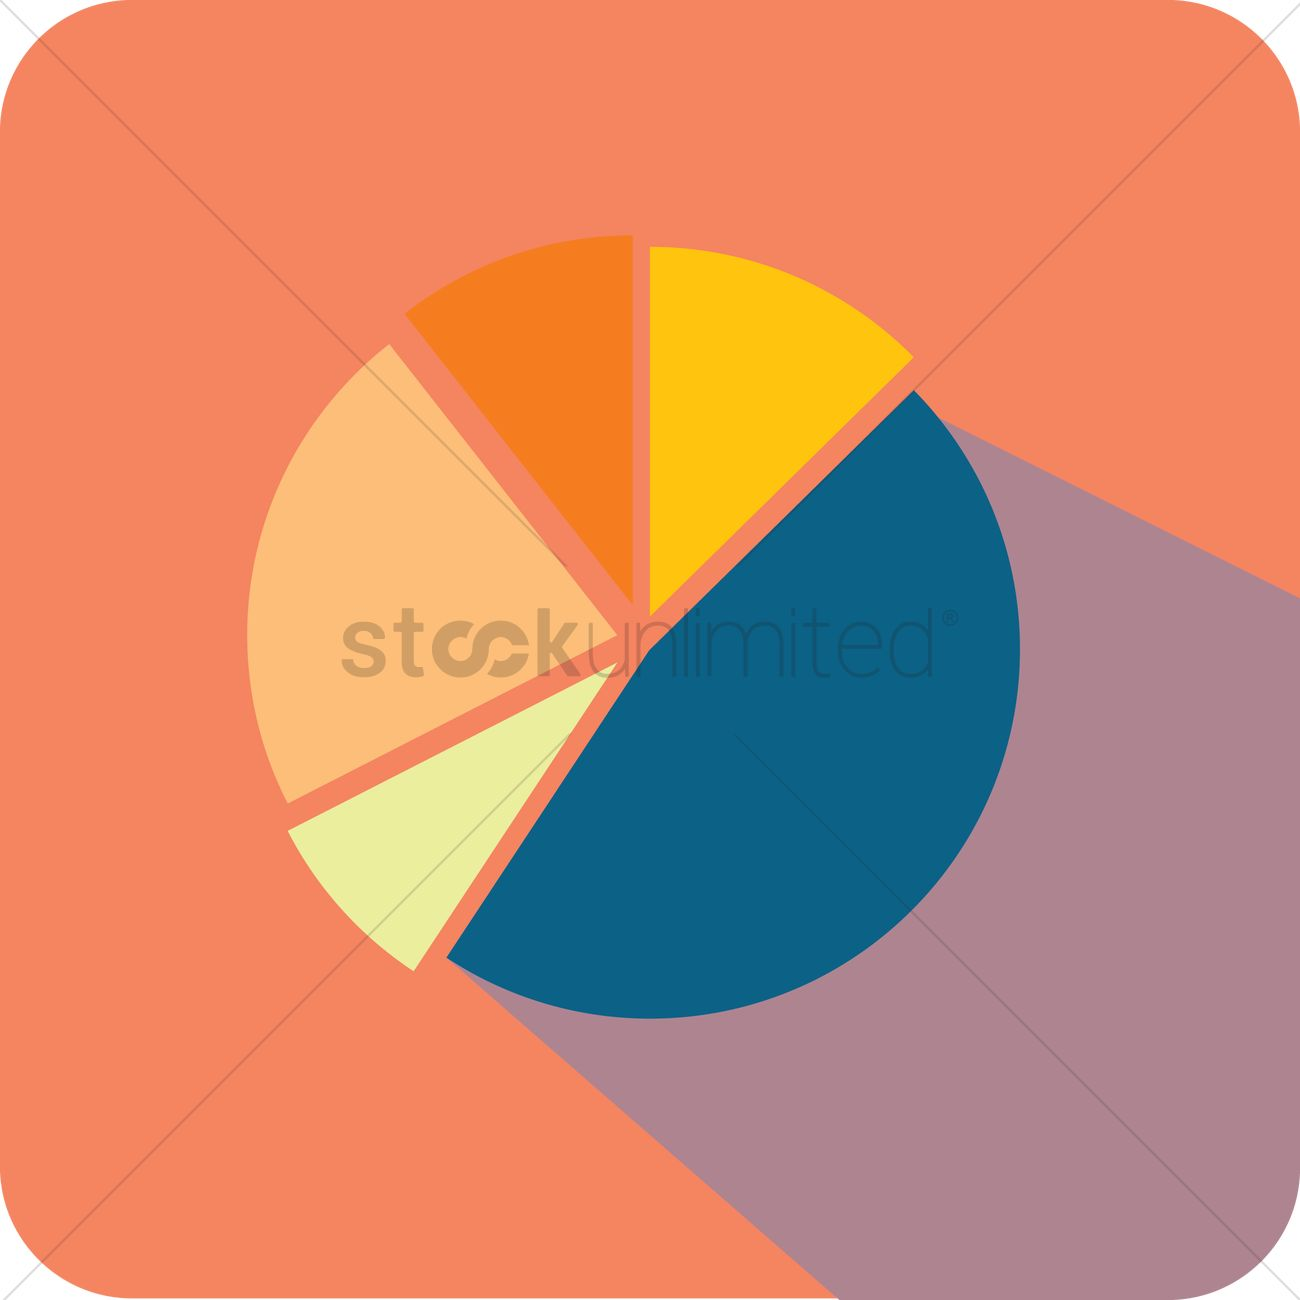 Free A Pie Chart Vector Image 1278770 Stockunlimited